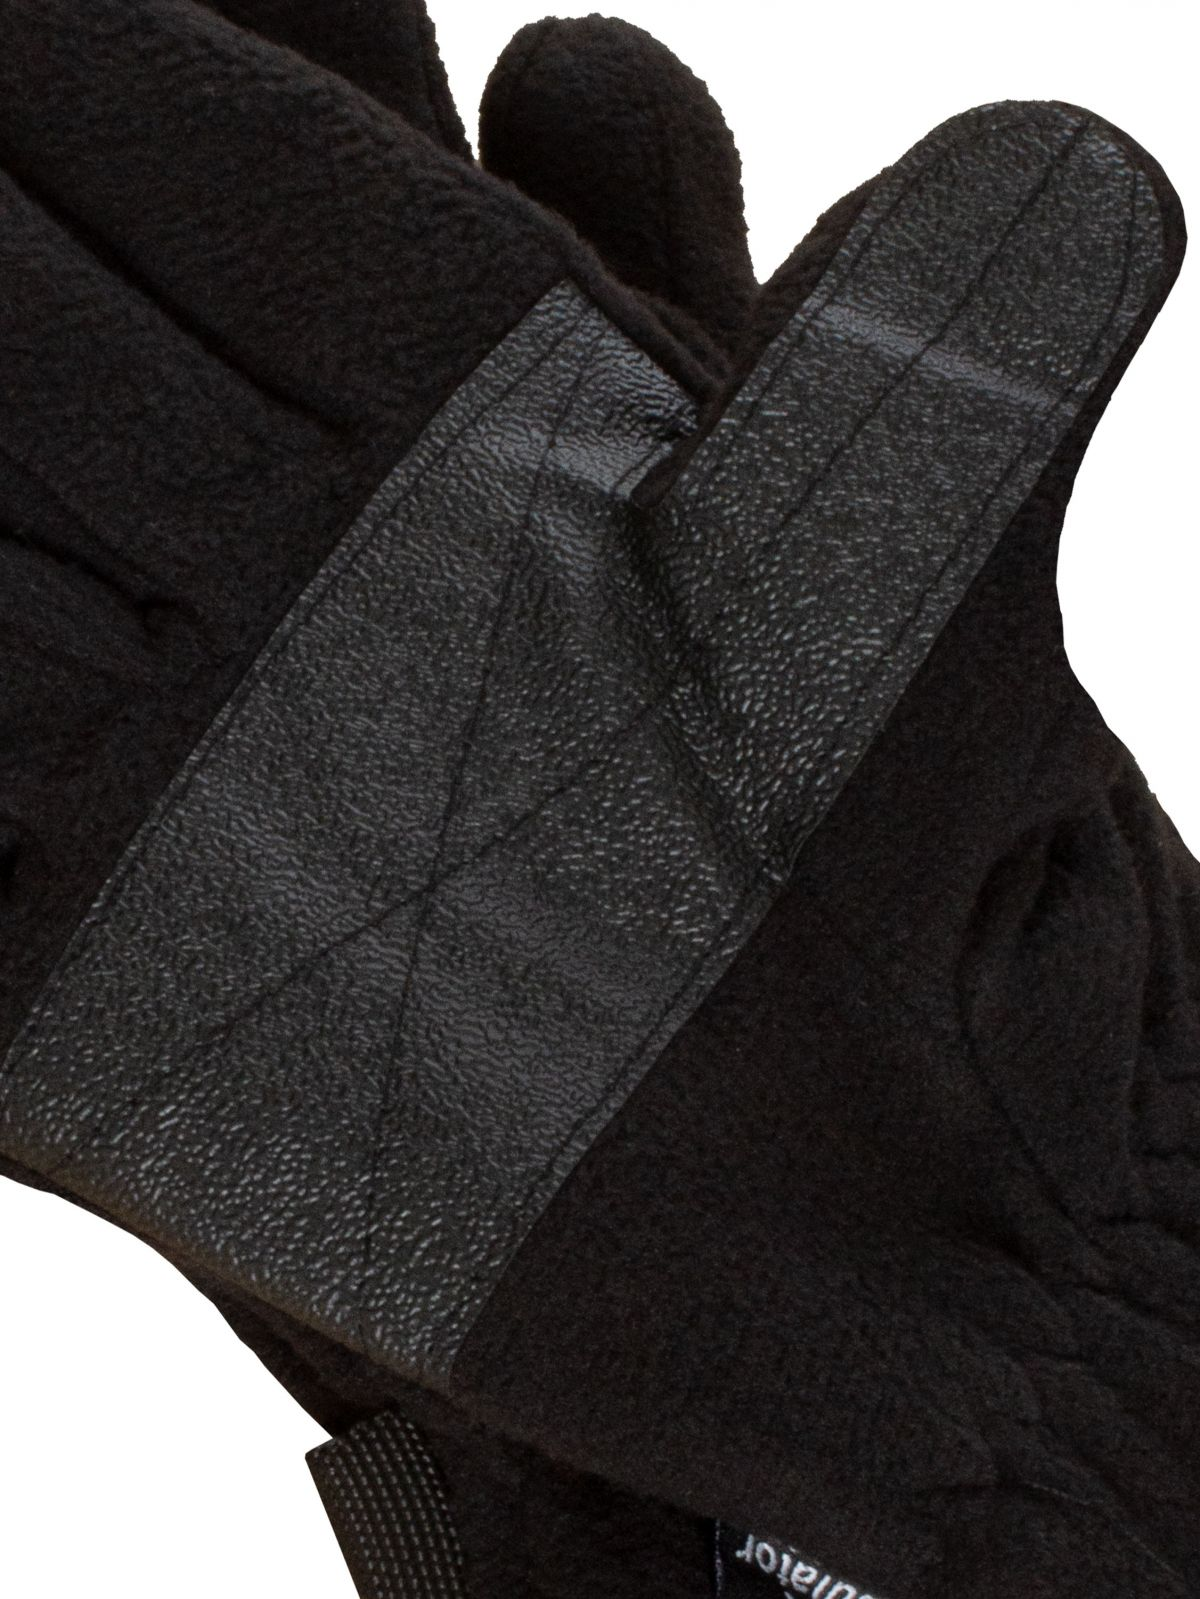 Accessories | Mens Thermal Insulation Fleece Lined Warm Winter Gloves